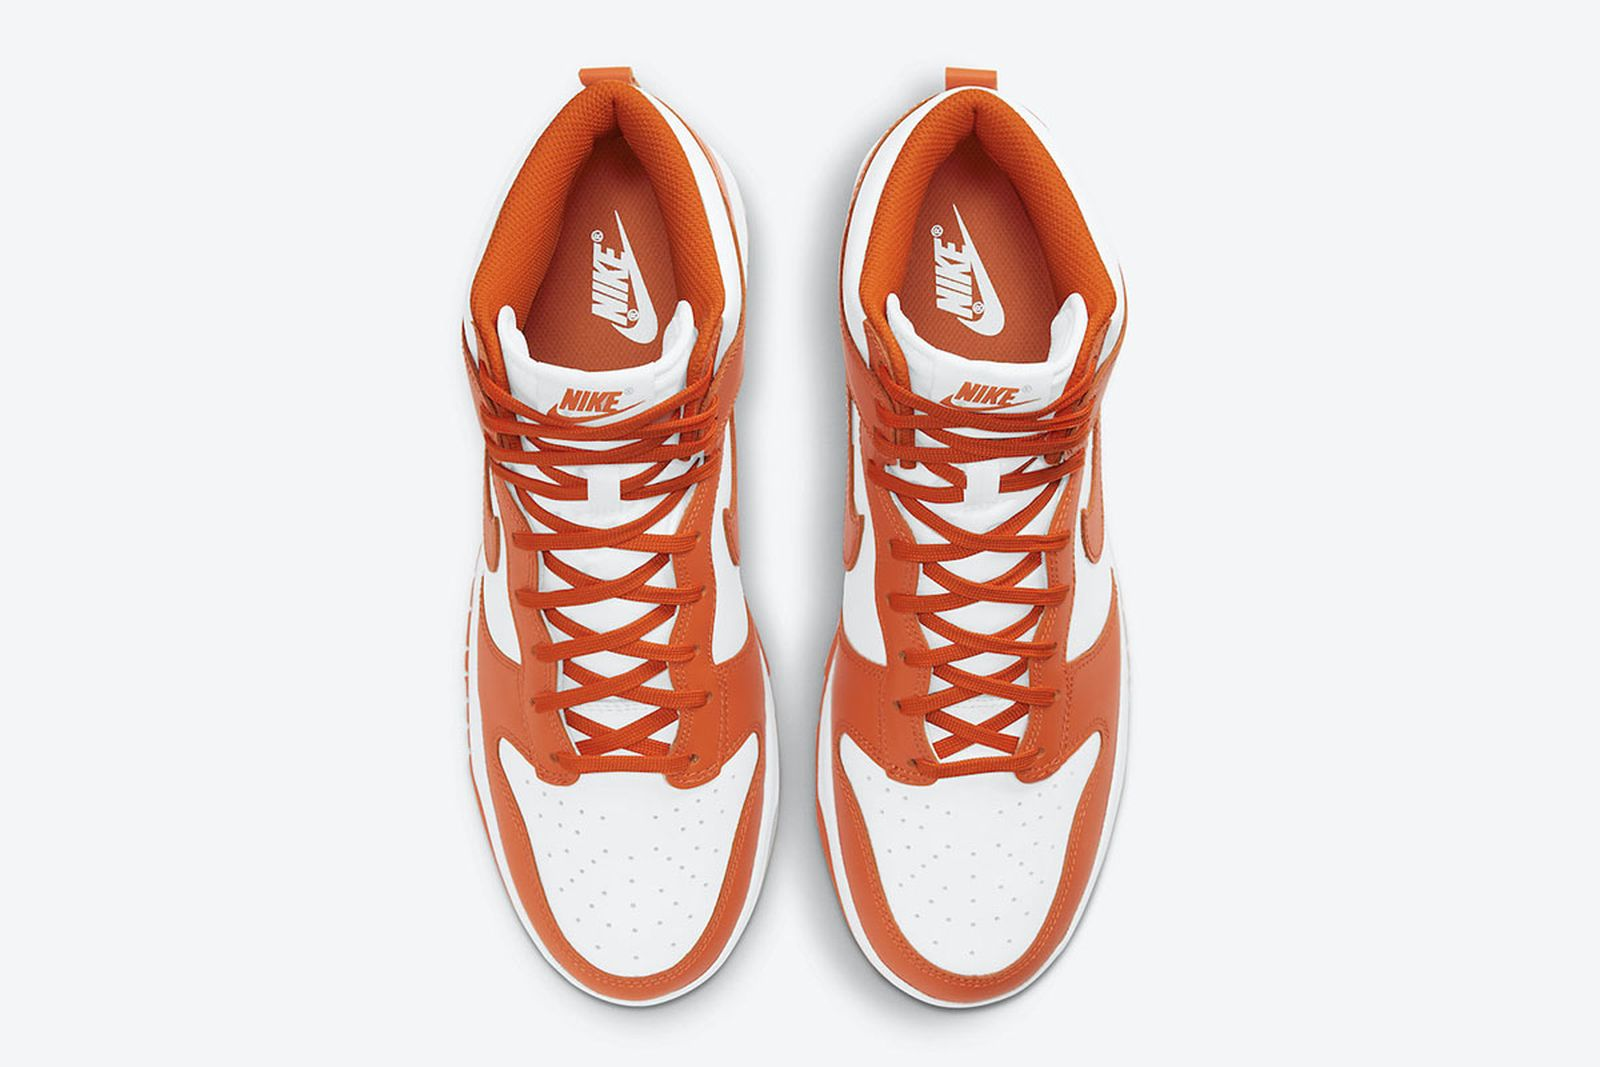 nike-dunk-high-syracuse-release-date-price-05